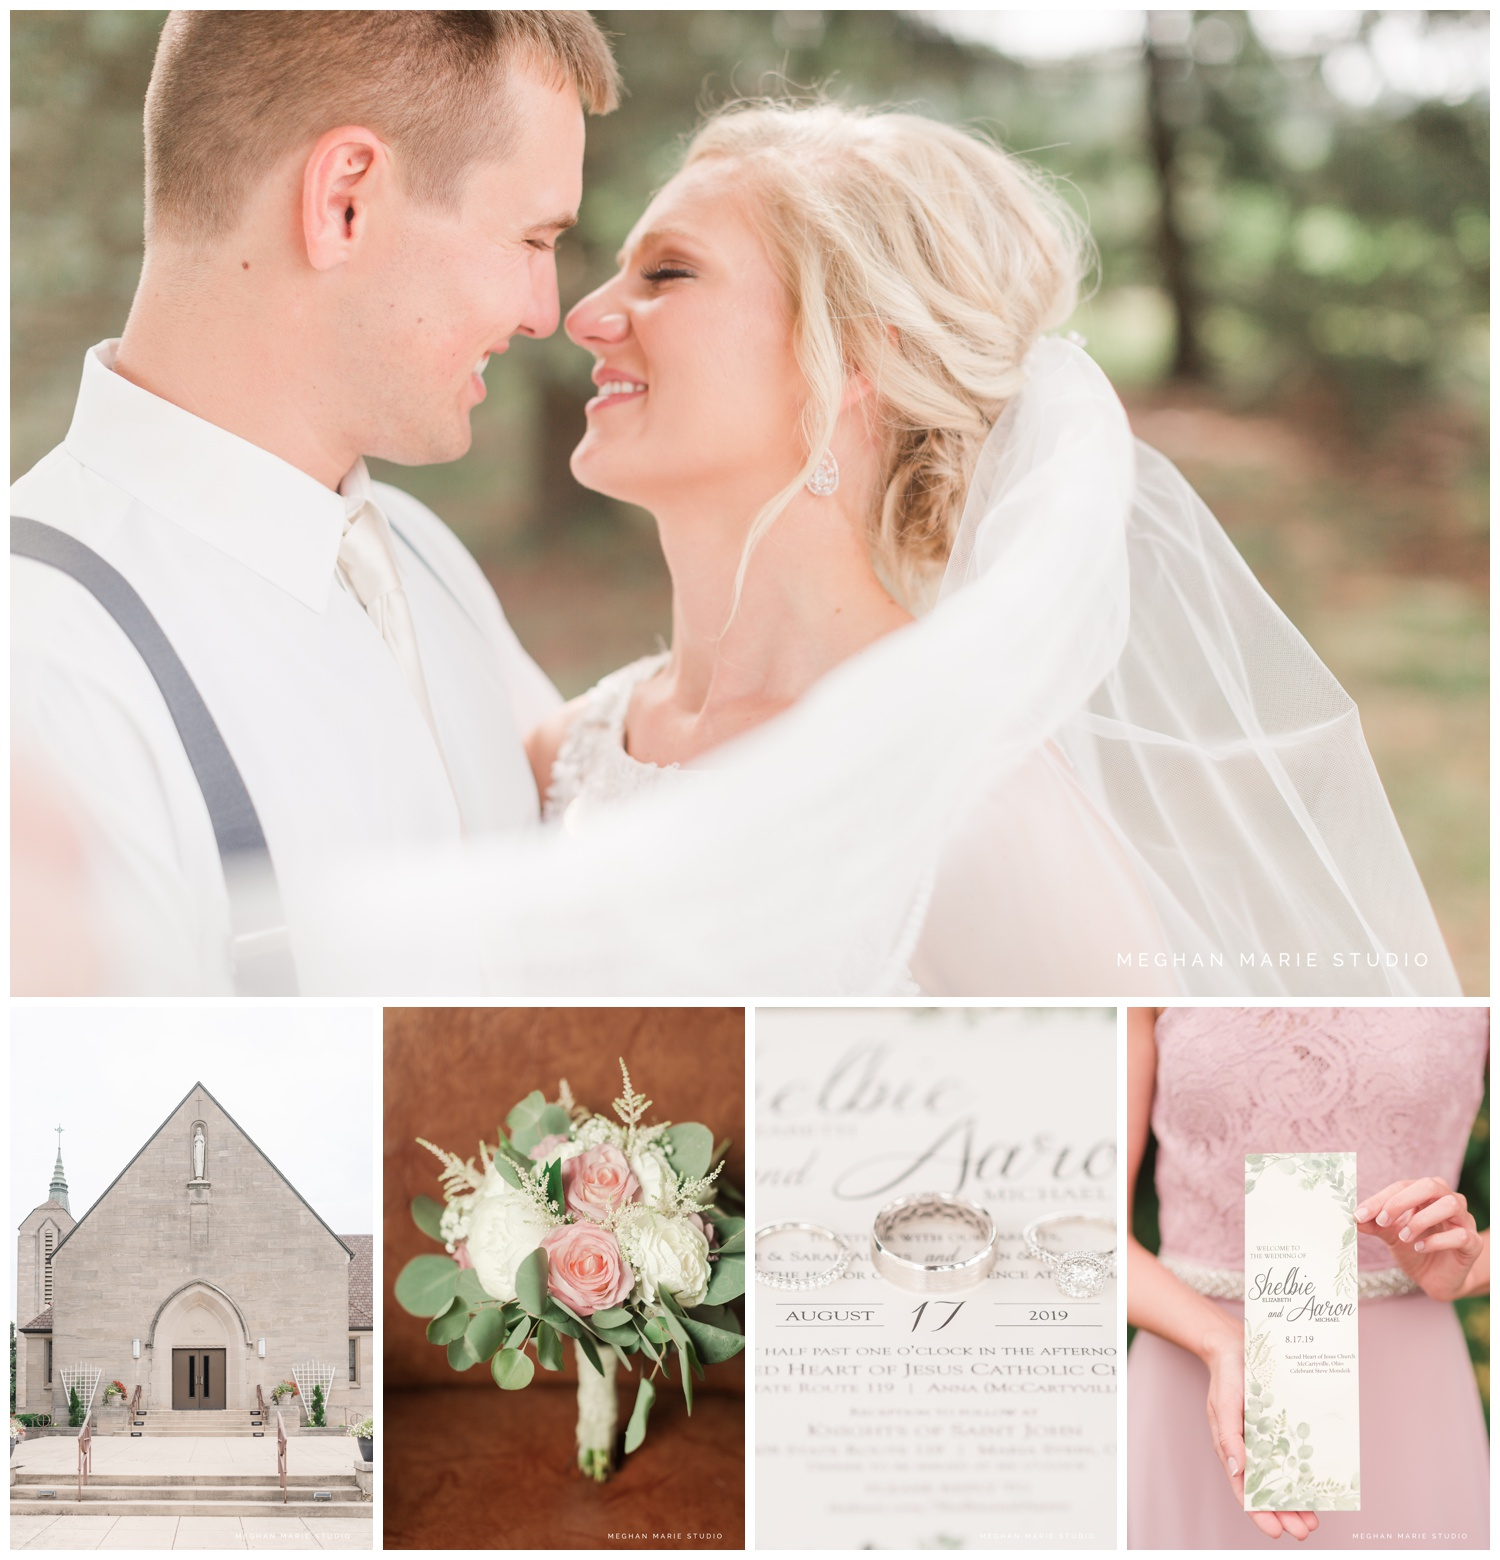 meghan marie studio wedding photographer ohio troy dayton columbus small town rustic rural farm cows vintage mauves dusty rose pinks whites ivorys grays f1 sound paper lanterns pearls_0573.jpg